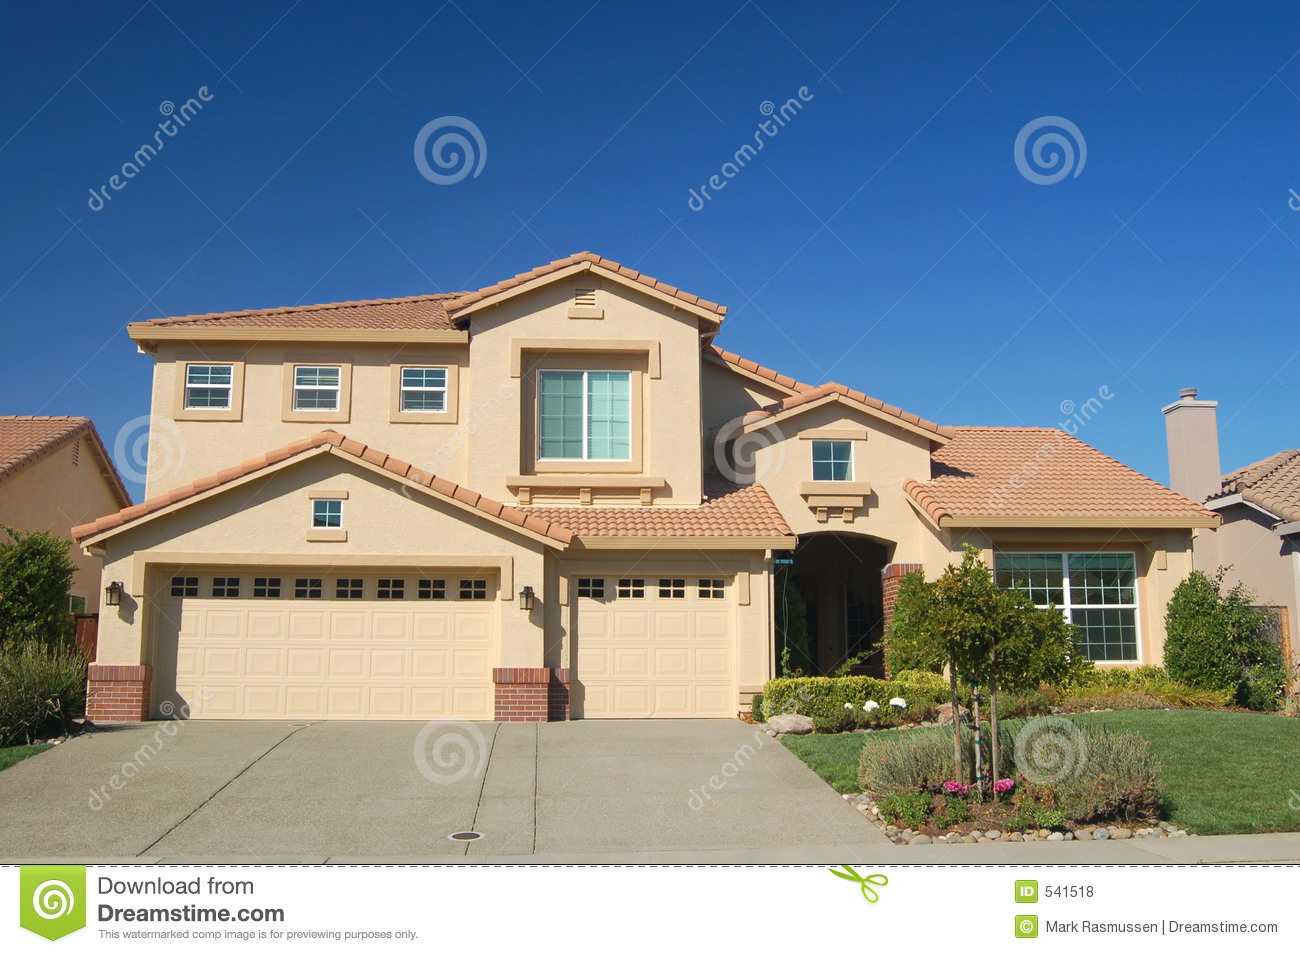 House in the suburbs royalty free stock photos image 541518 for Free house photos